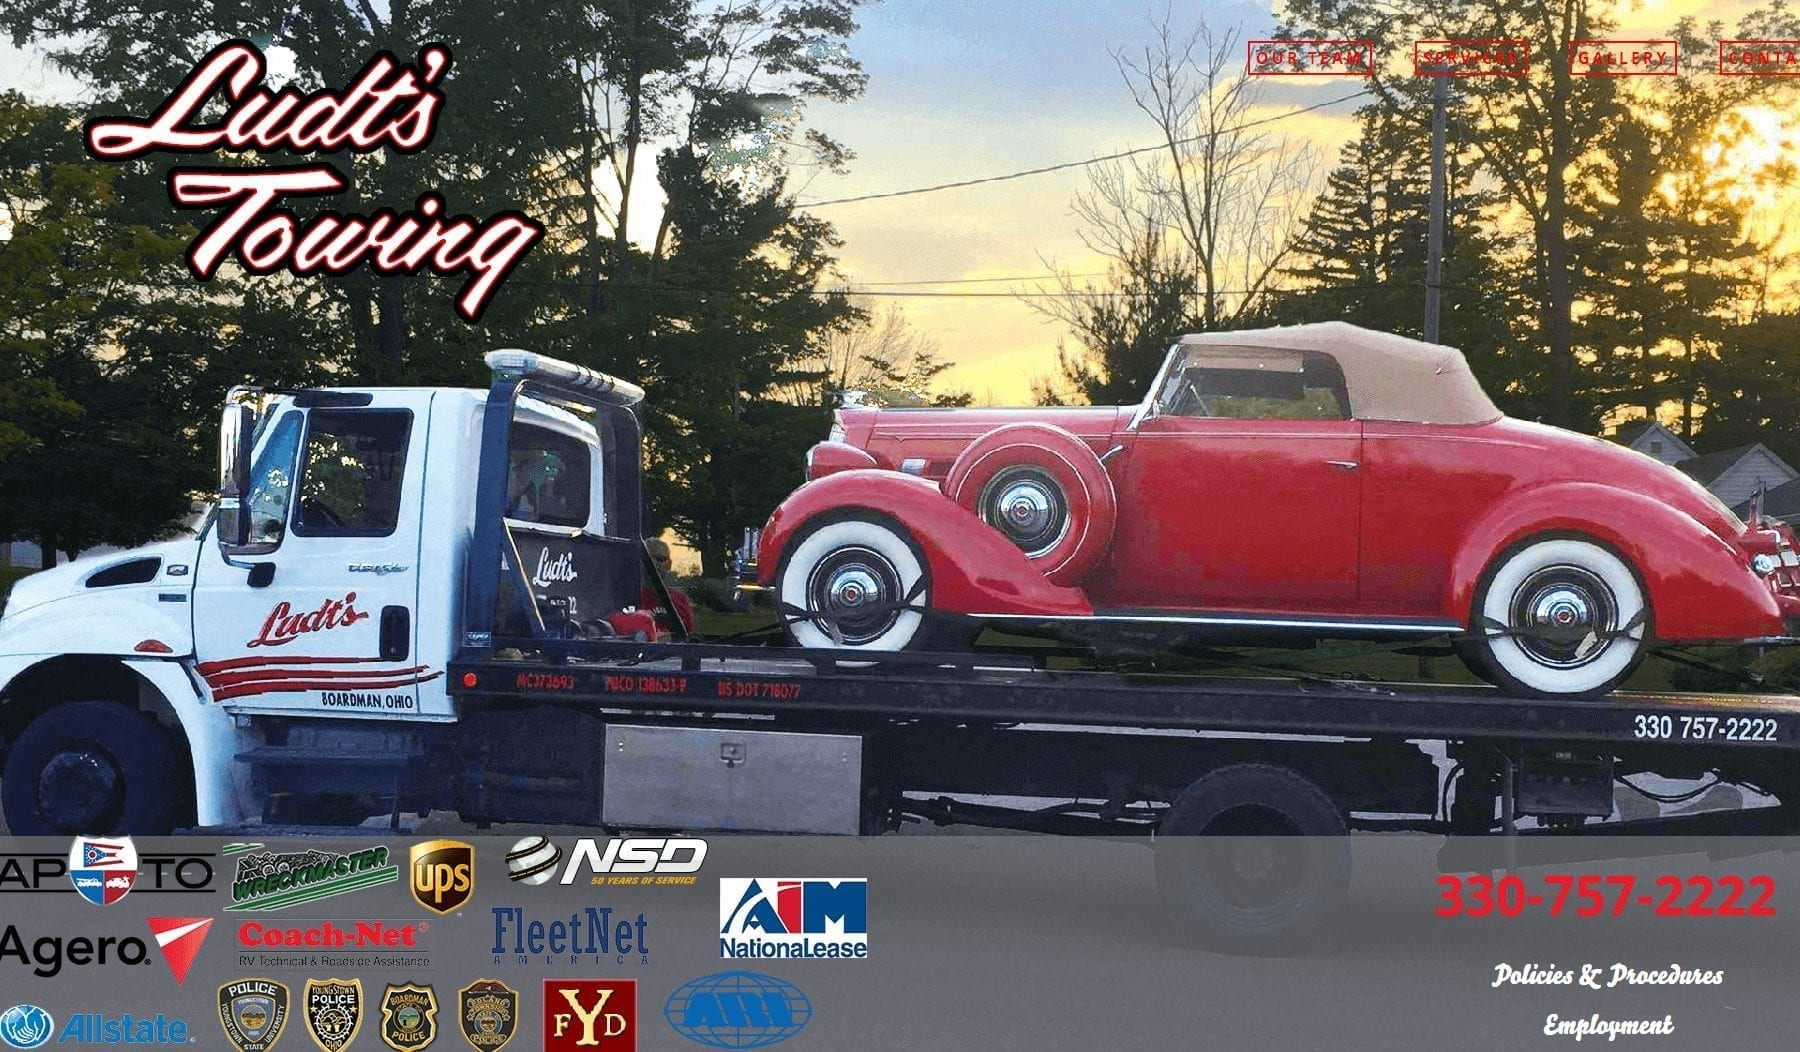 Ludt's Towing